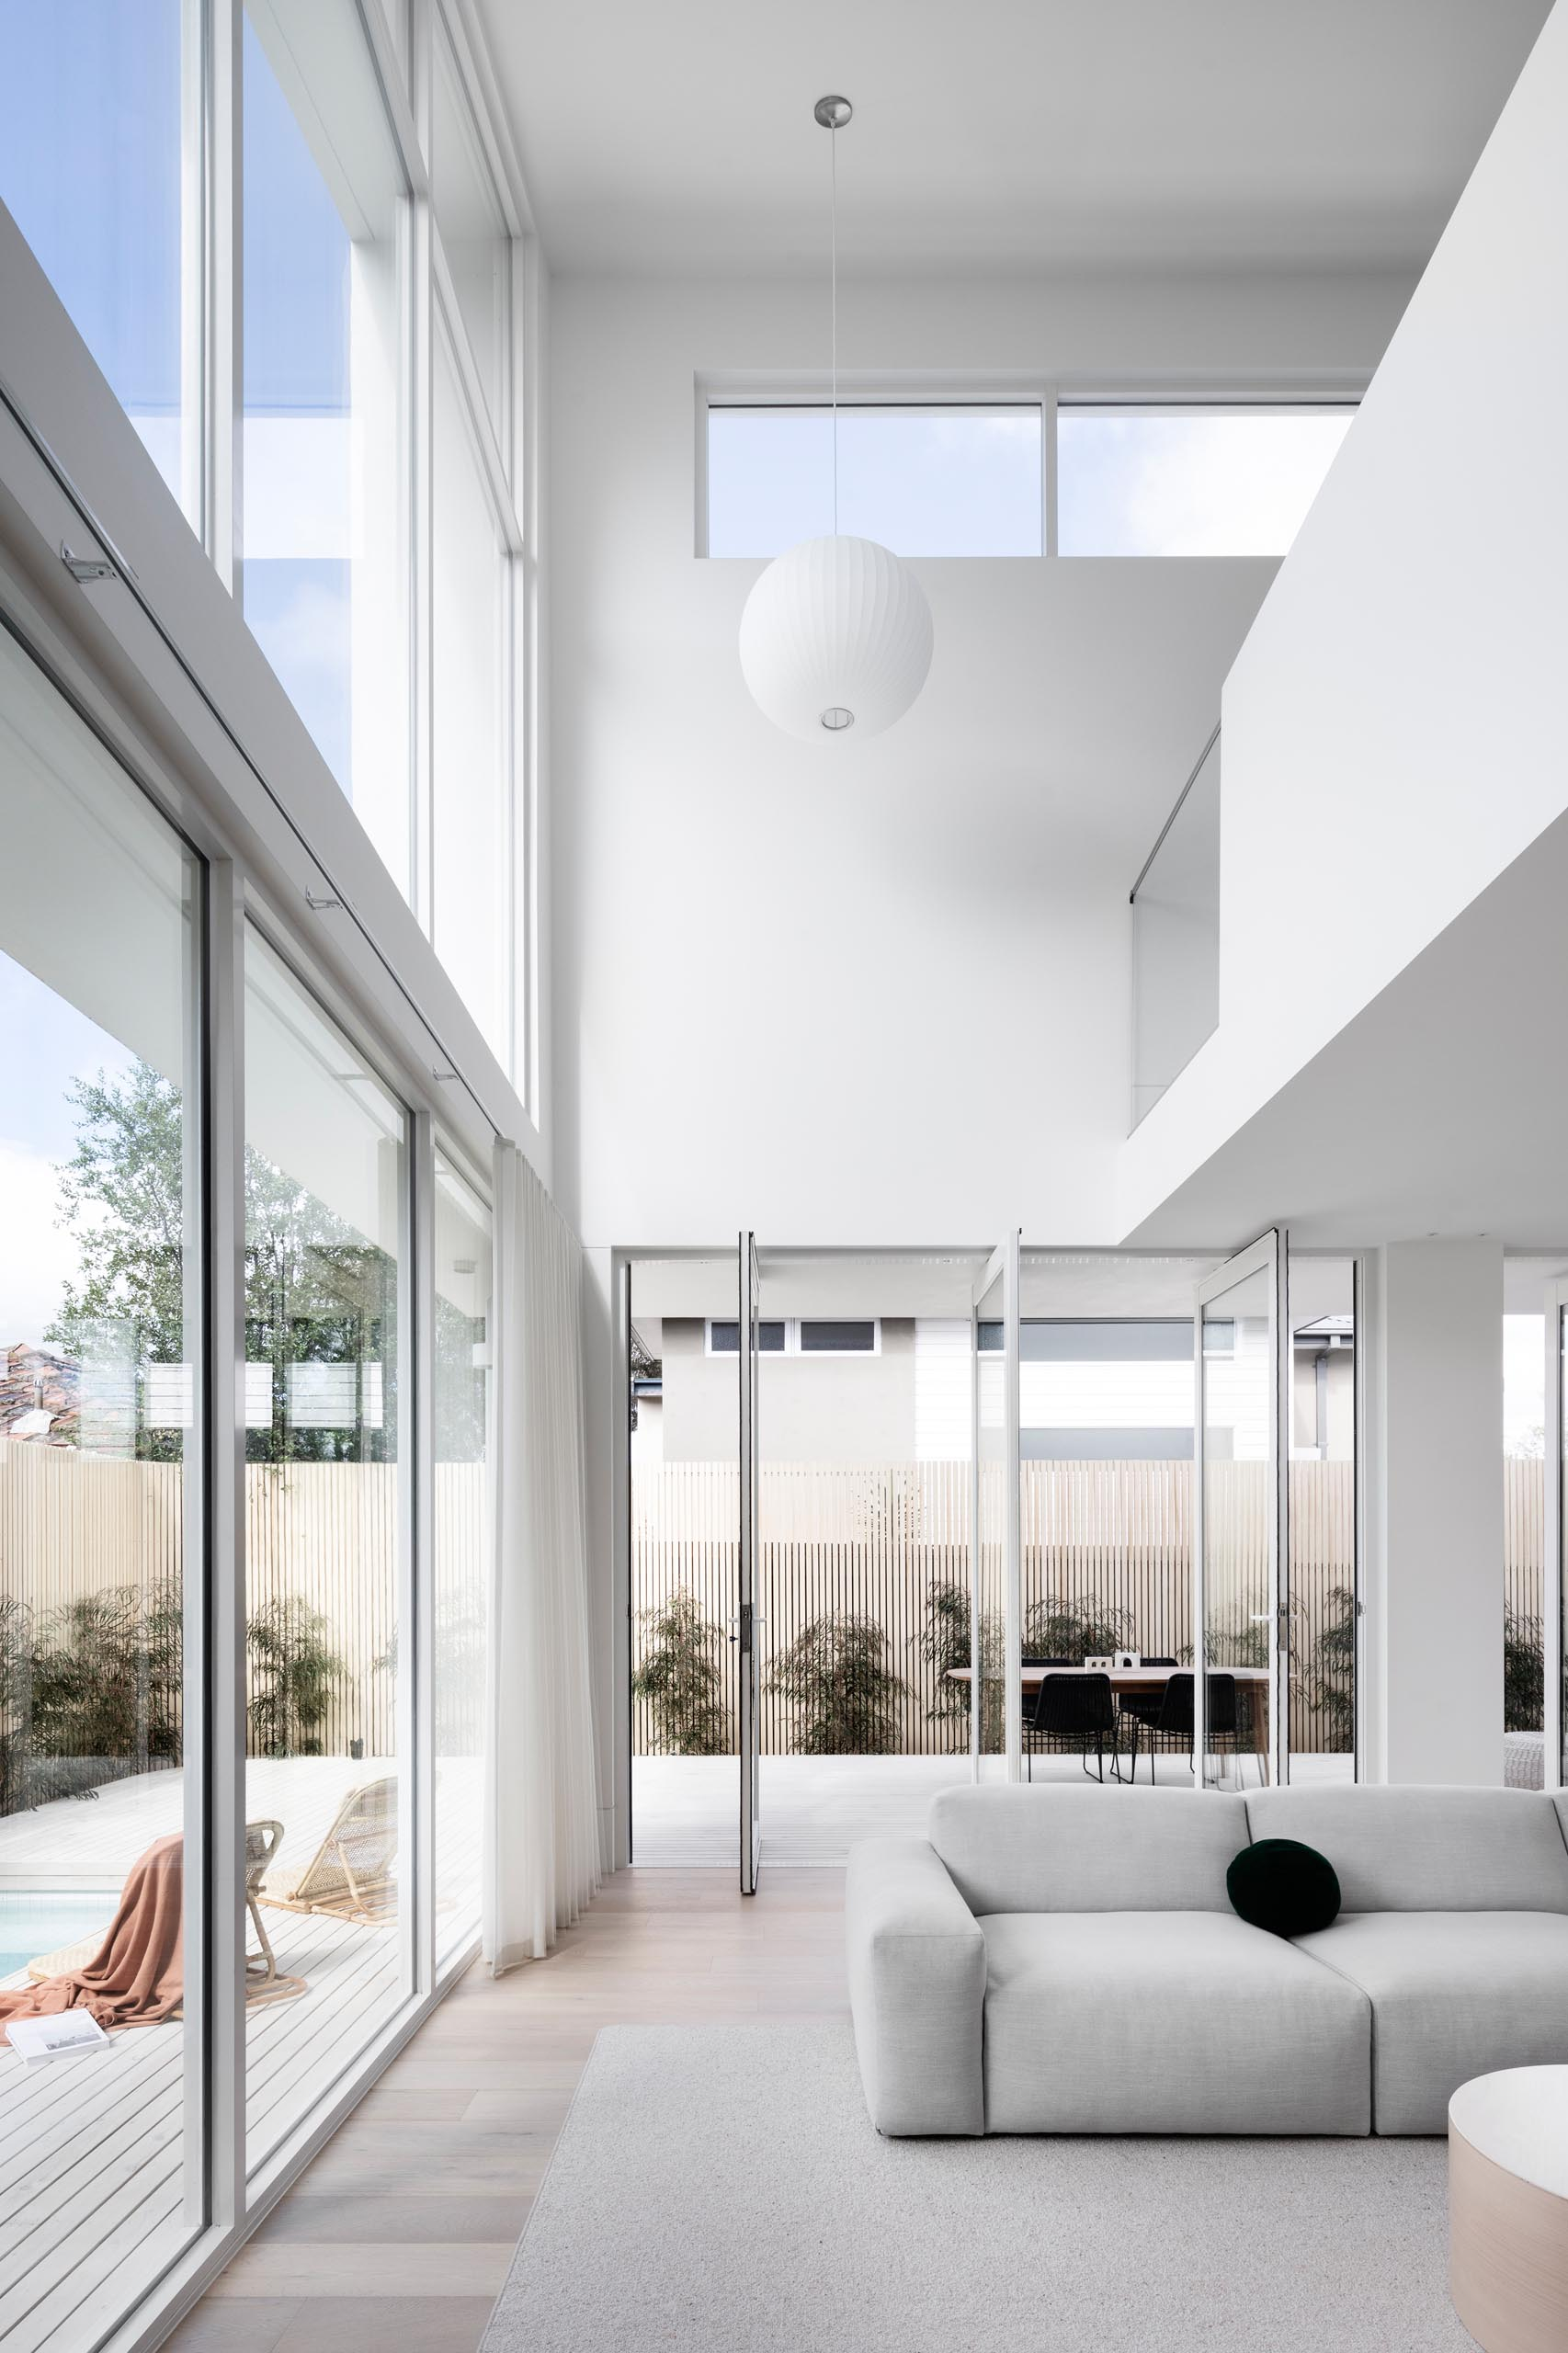 Pivoting sections of glass walls connect the interior spaces with the outdoors of this modern house.